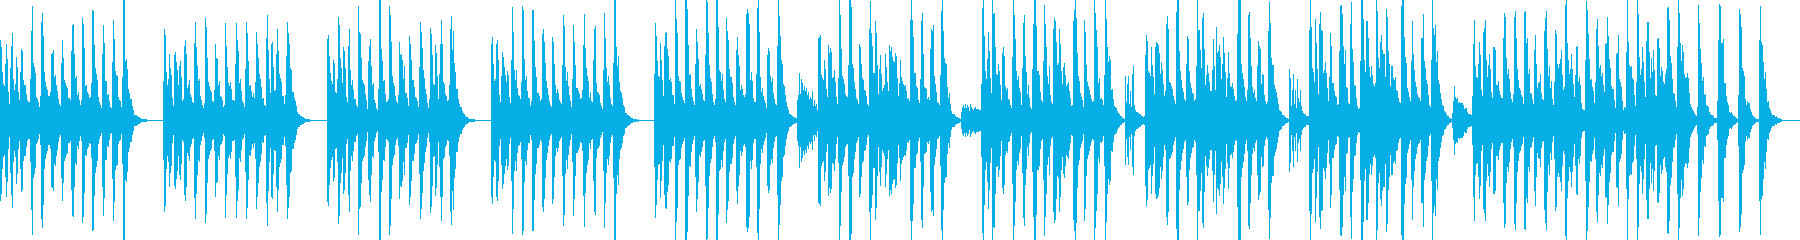 For funny and comedy's reproduced waveform